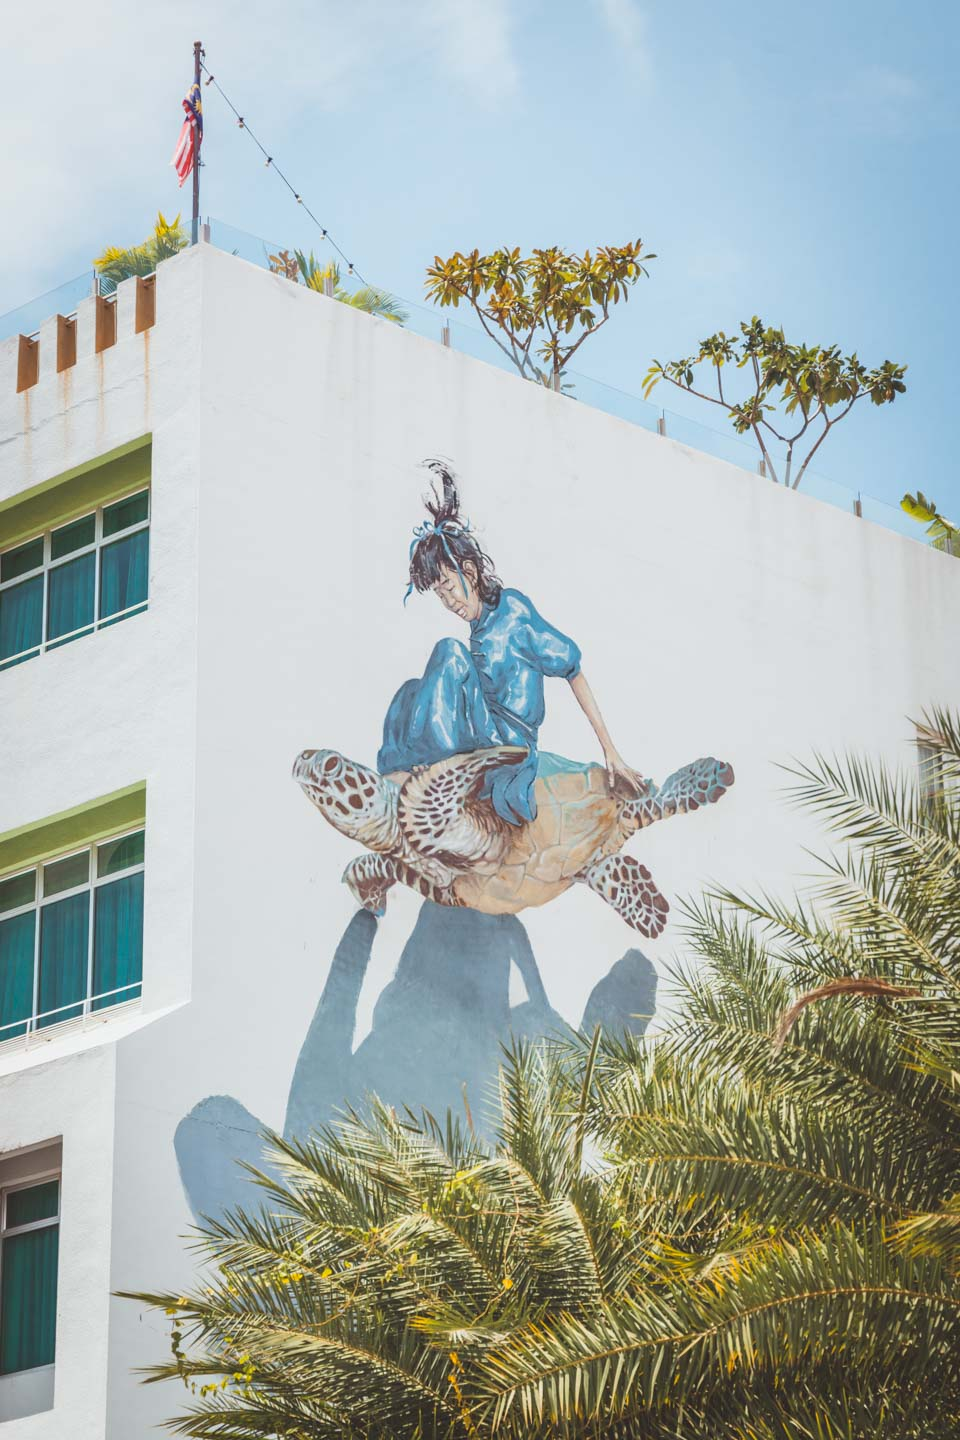 Girl on a turtle, Ernest Zacharevic, Penang Street Art